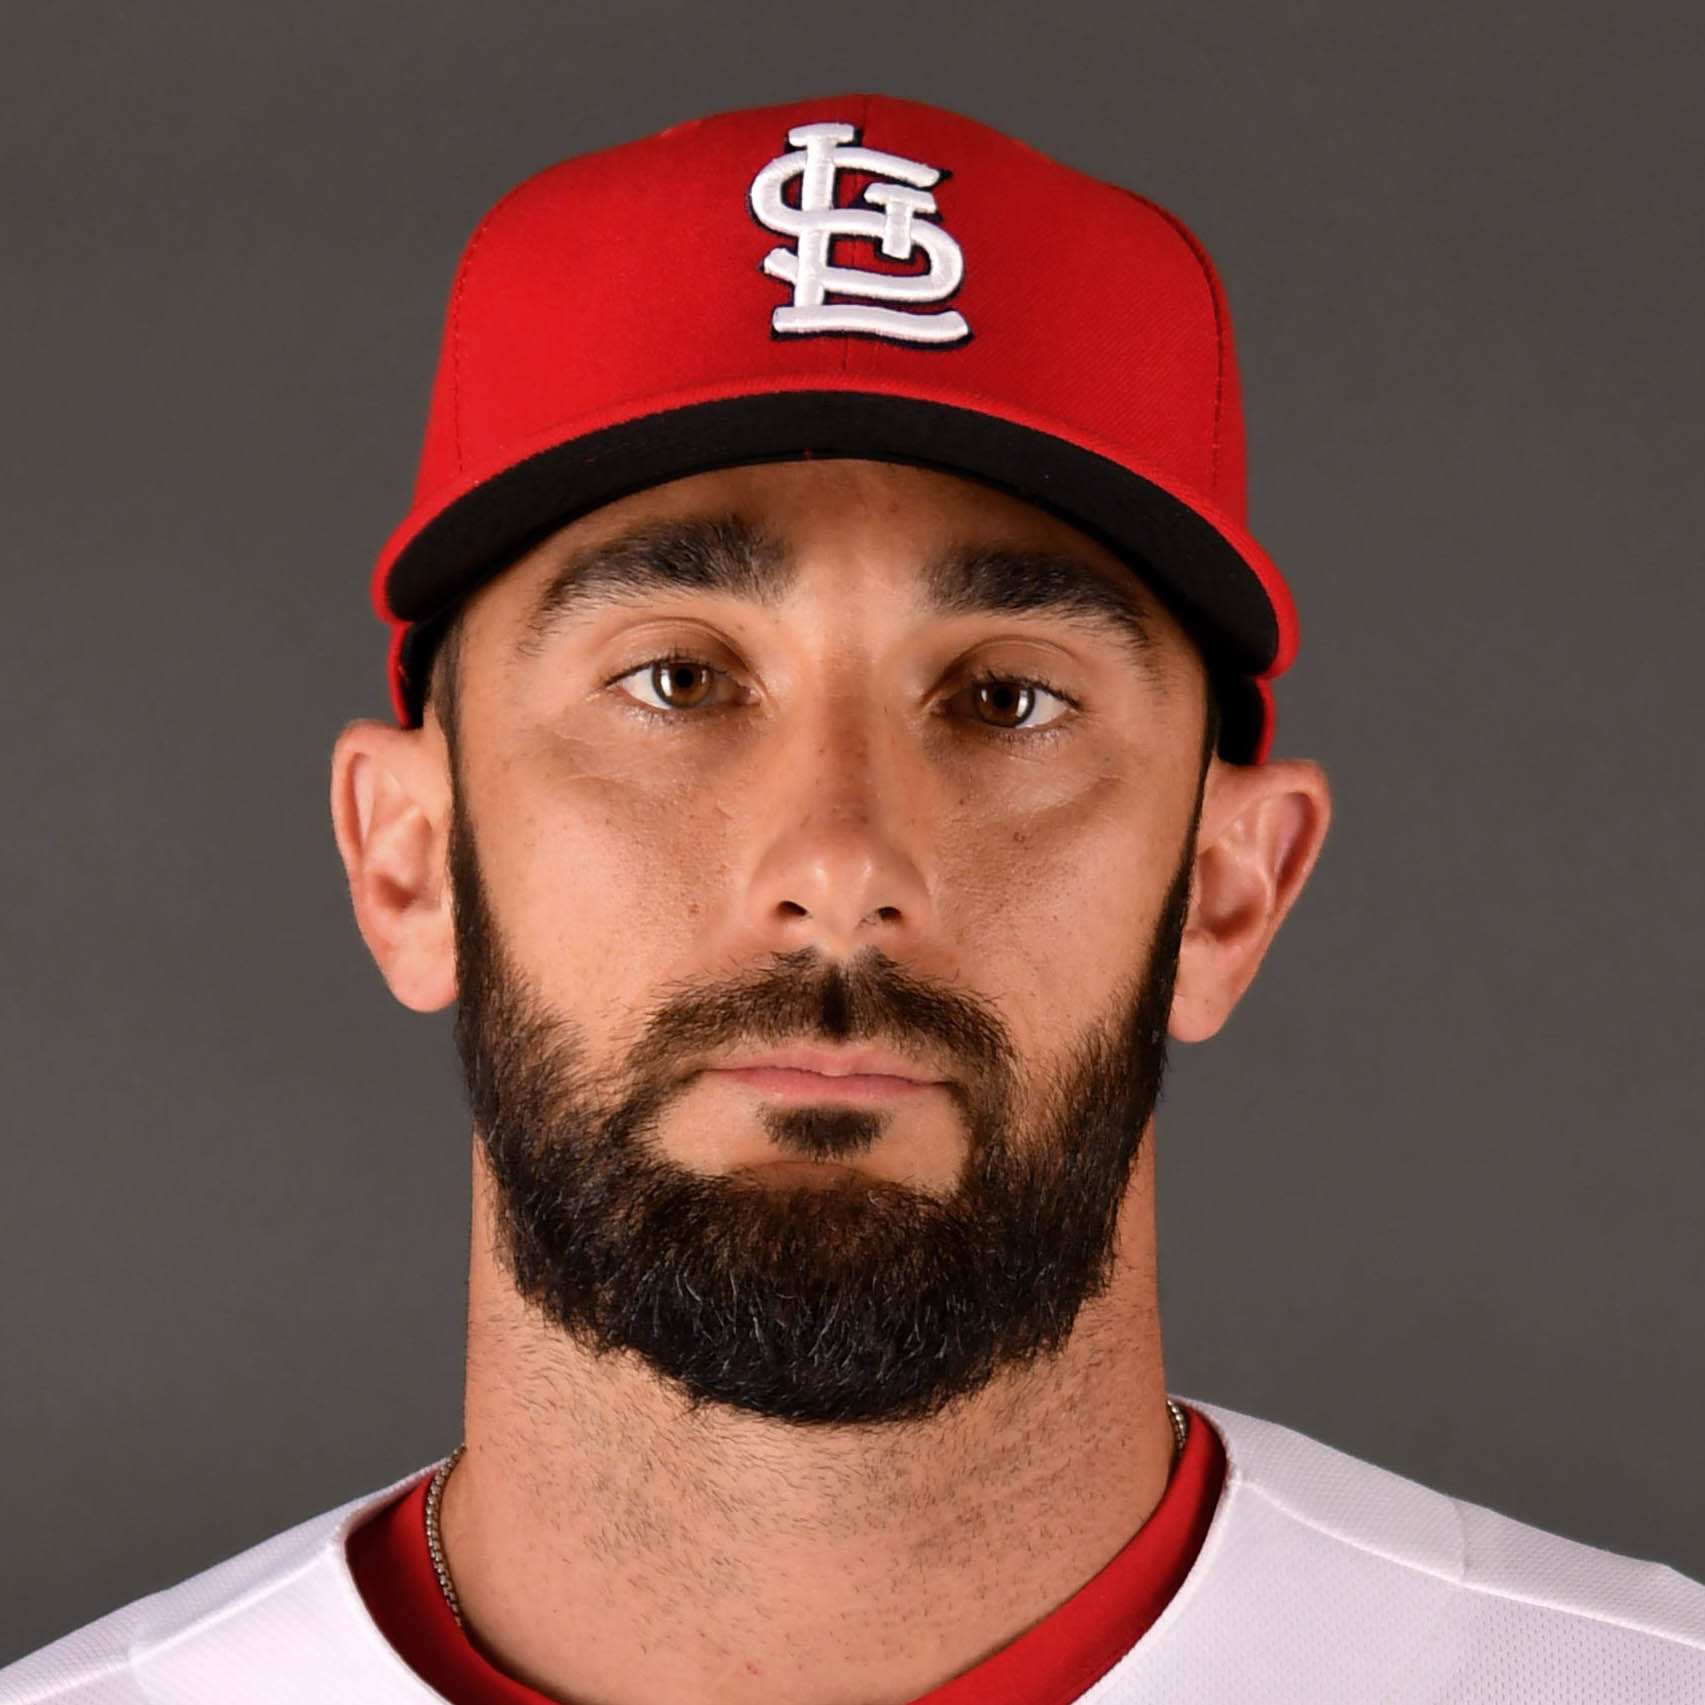 Matt Carpenter (L) Headshot